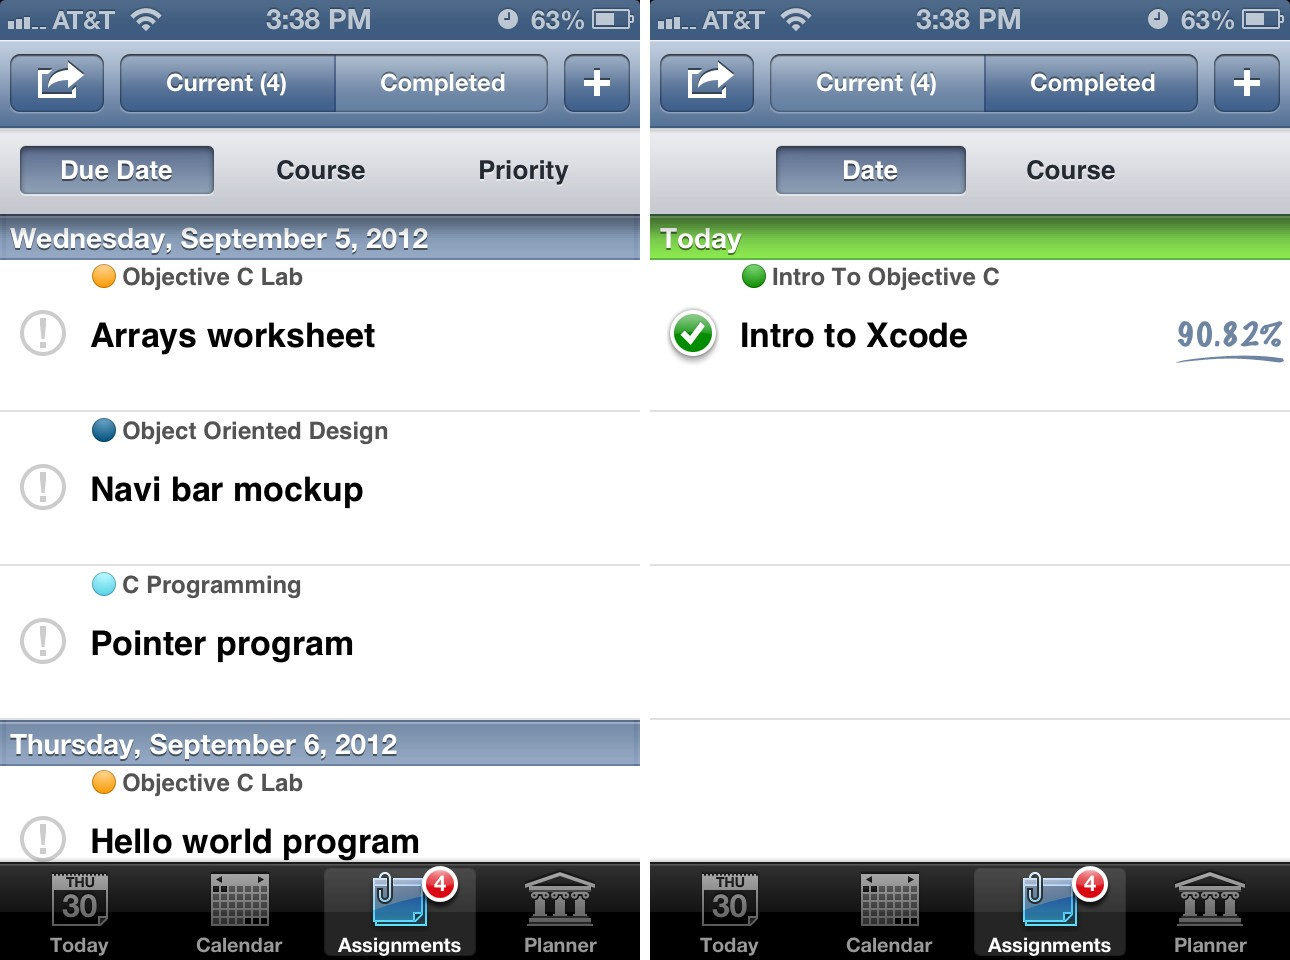 011 Research Paper How To End With Quote Istudiez Pro For Iphone Ui Stunning A Is It Bad Full